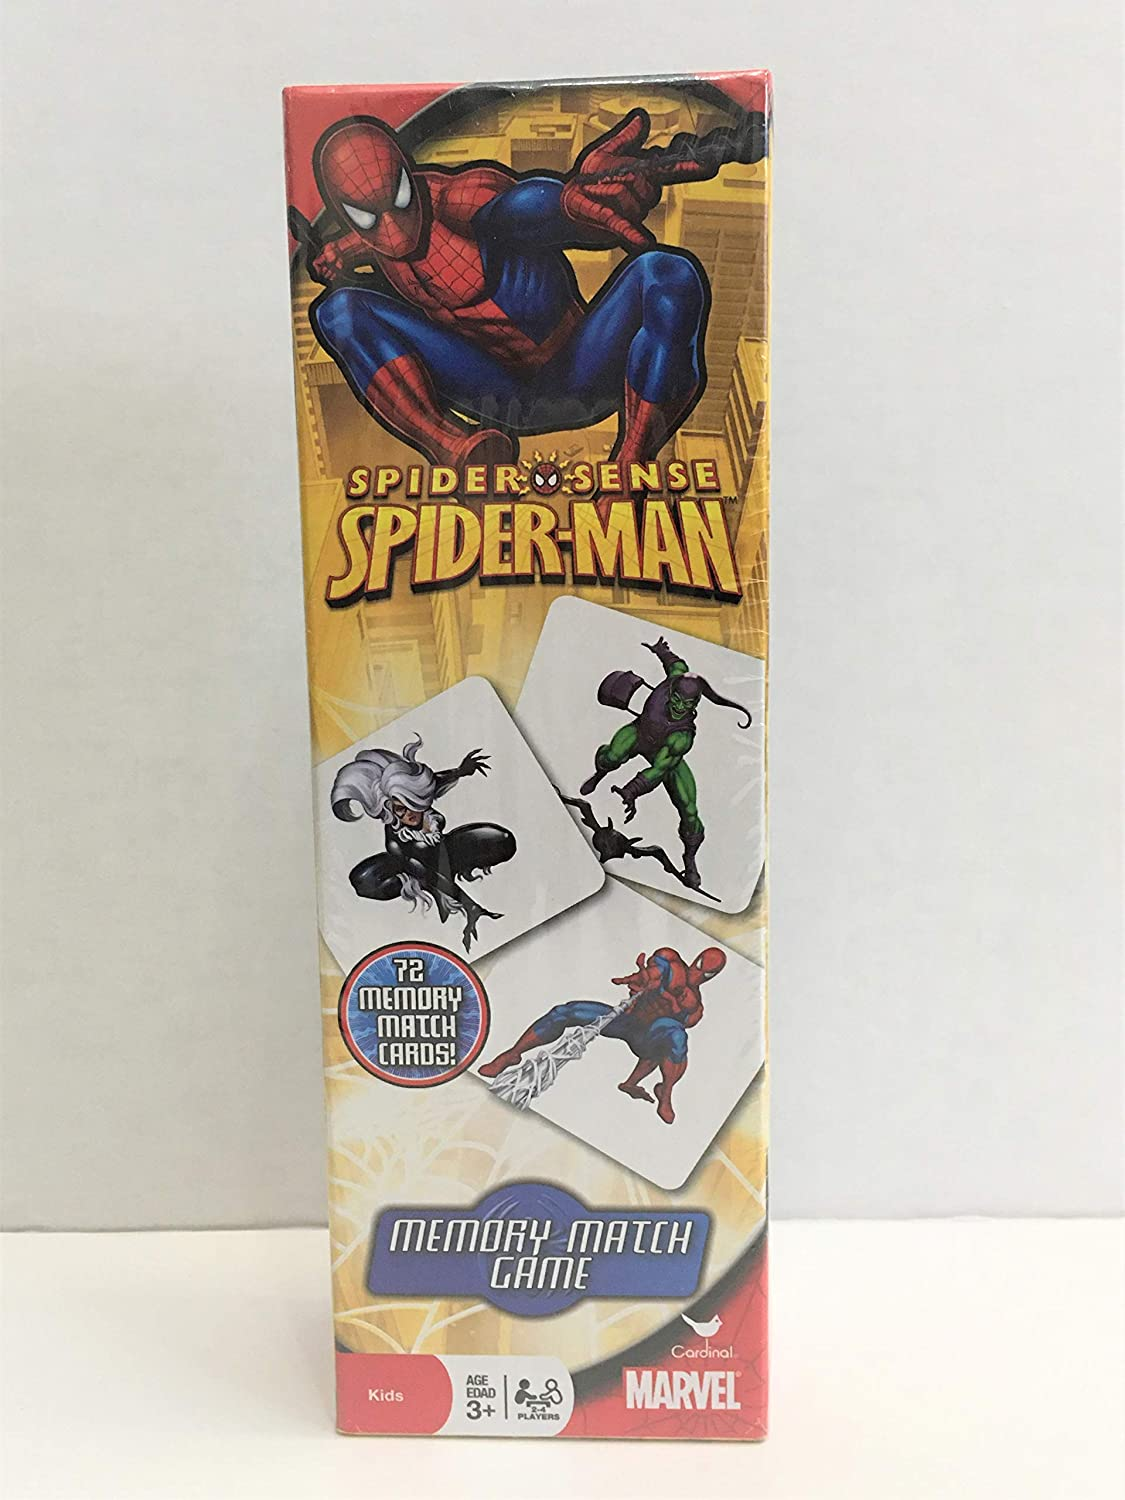 Intended For Ages 3 and Up Cardinal Industries 72 Cards Marvel Spiderman Spider Sense Memory Match Game